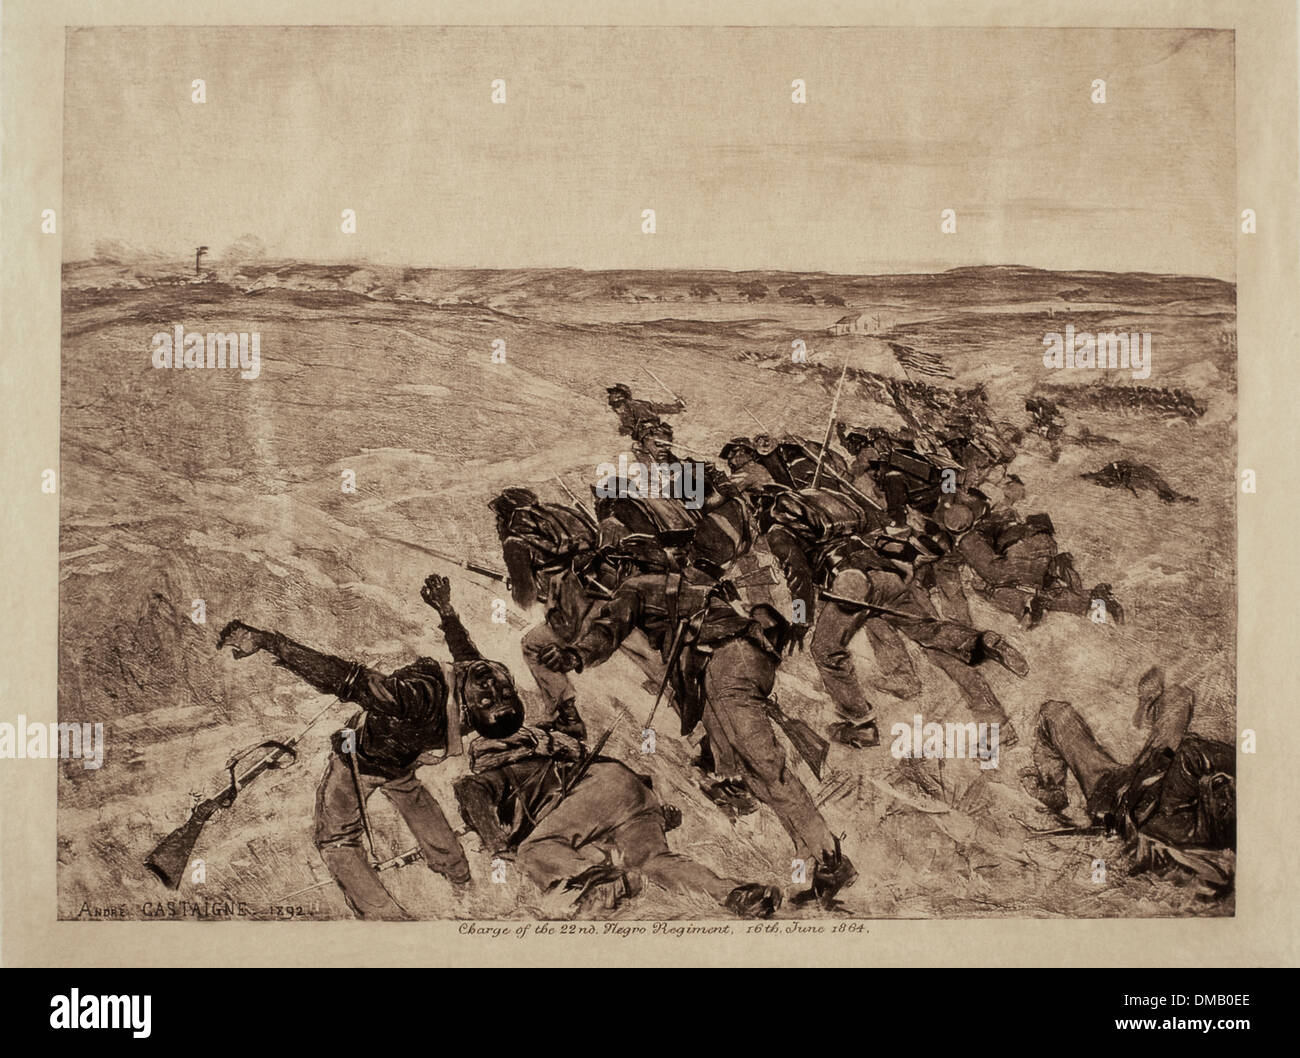 Charge of the 22nd Negro Regiment during Civil War, June 16, 1864, Illustration - Stock Image